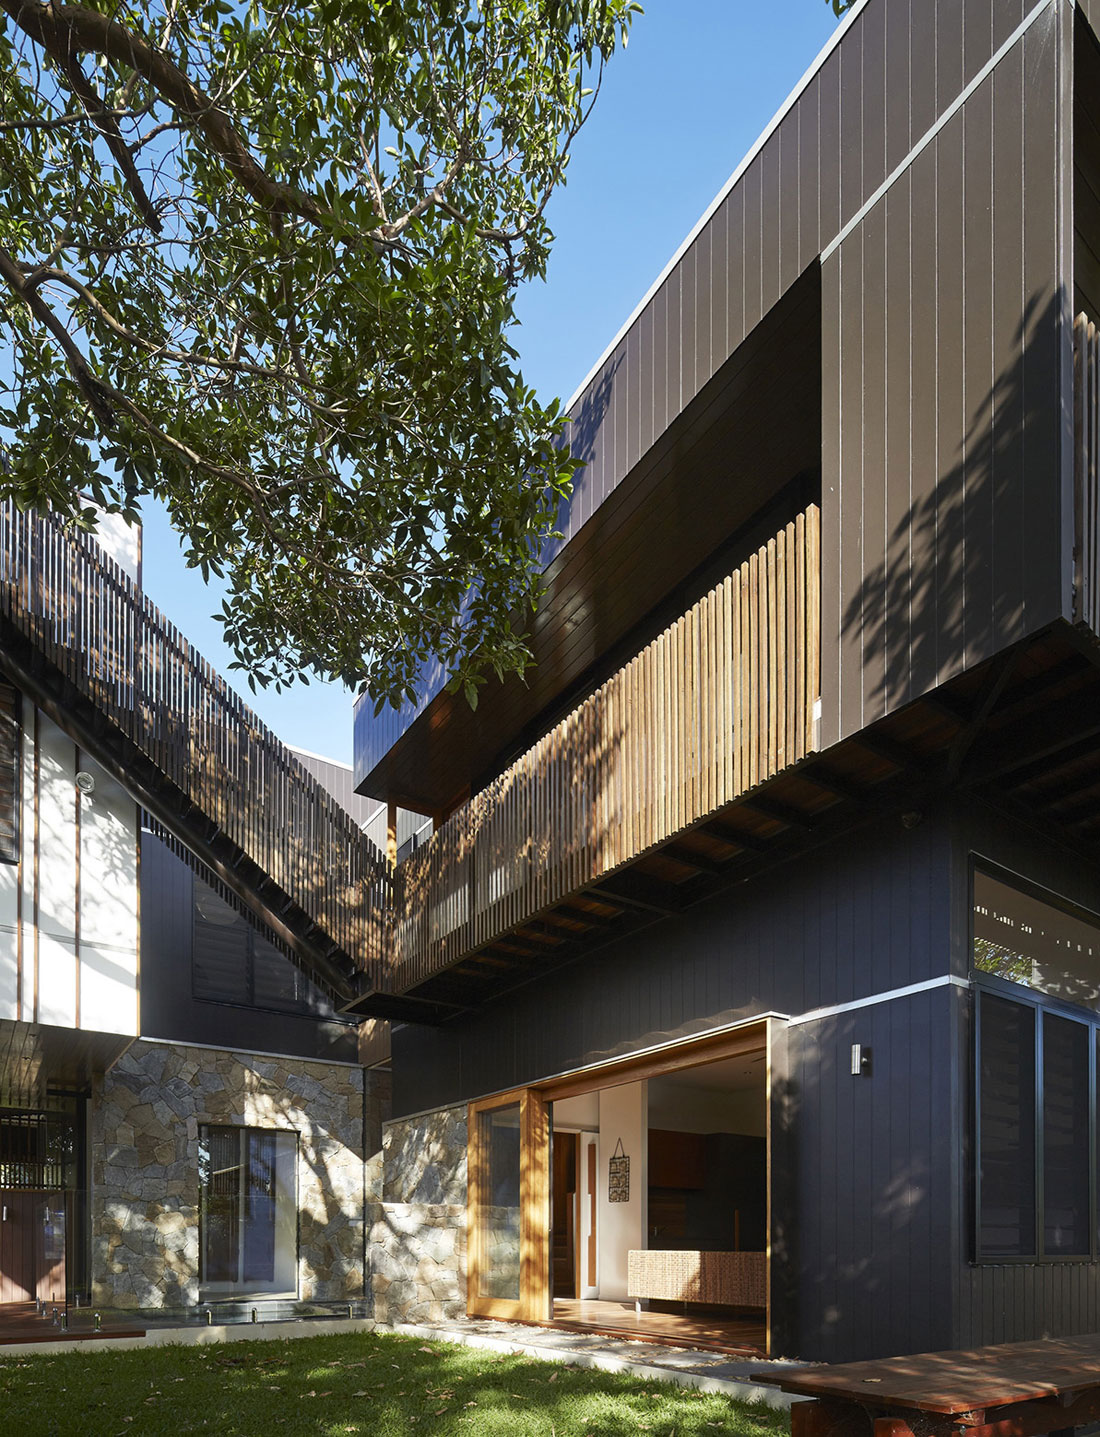 Bambara Street by Shaun Lockyer Architects (2)